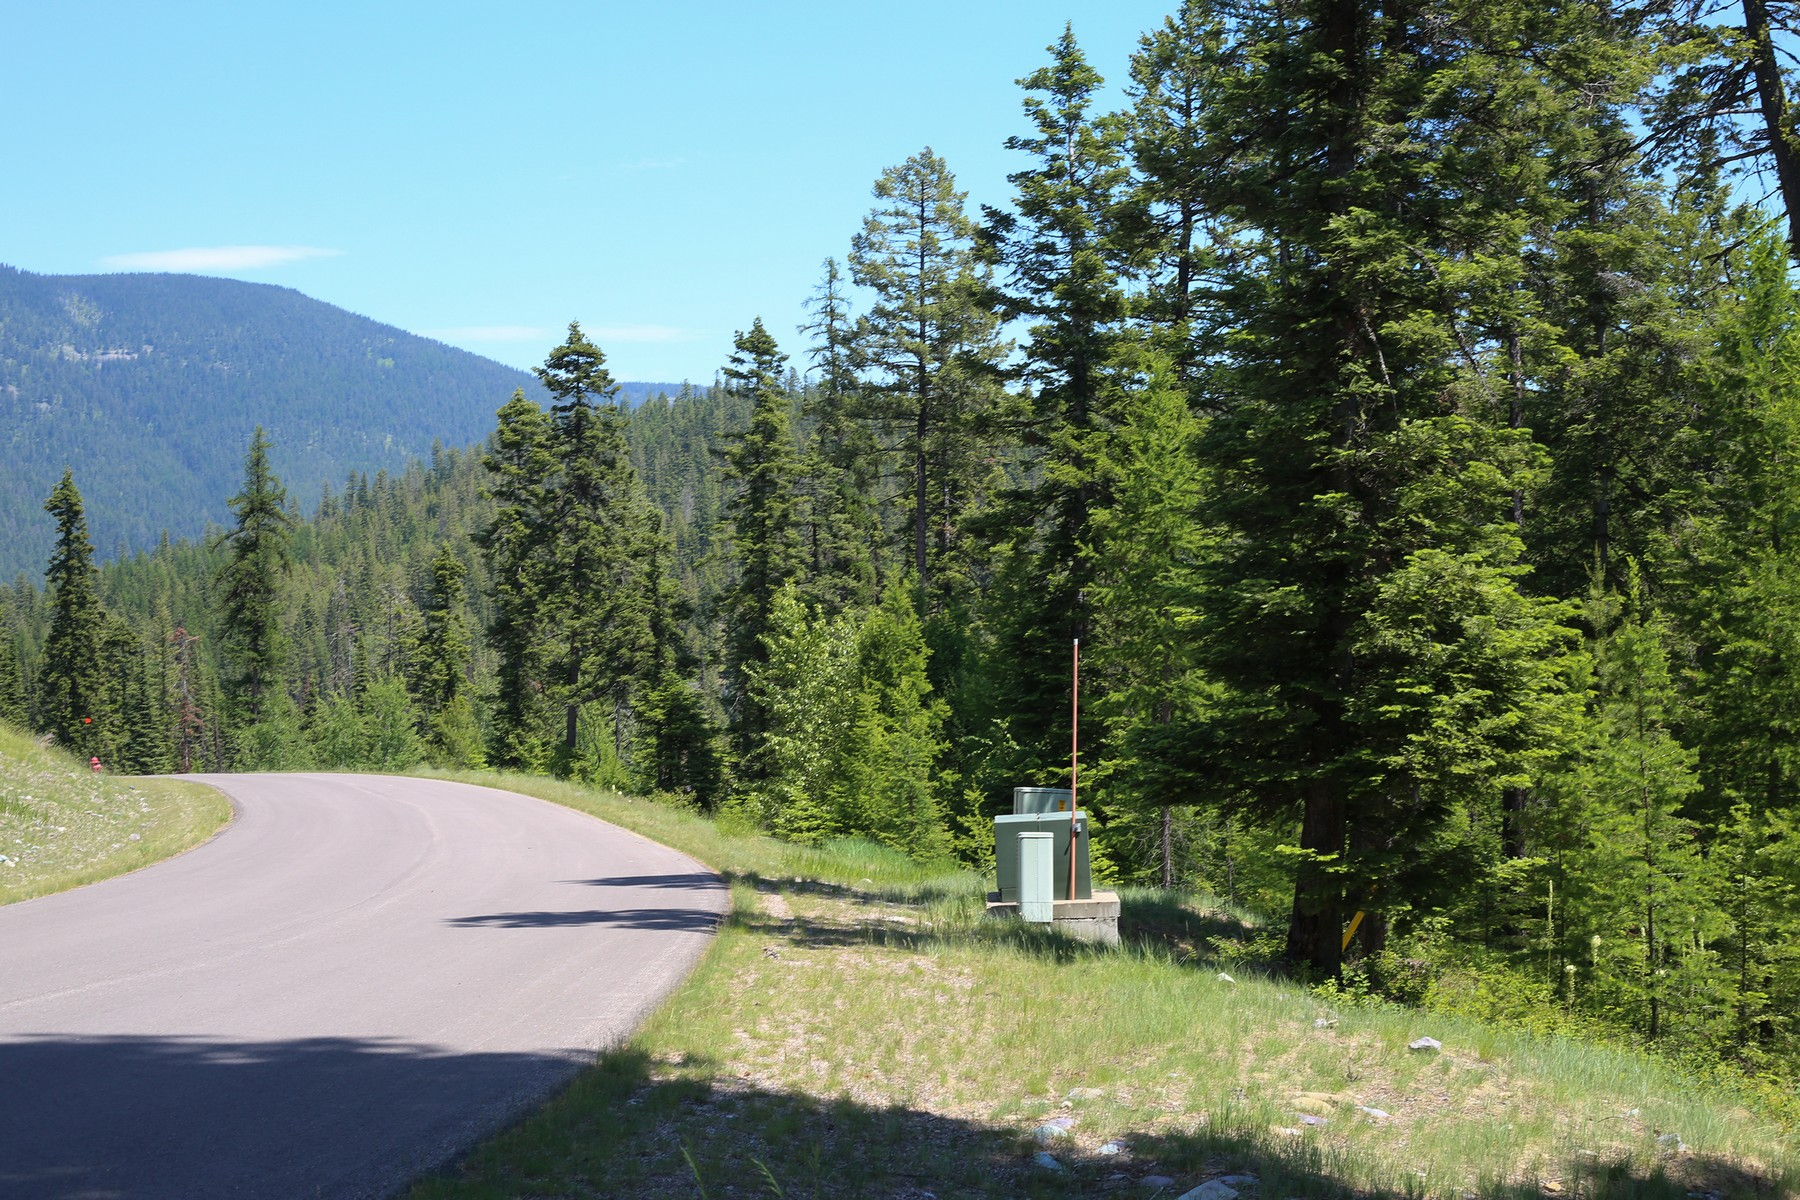 Additional photo for property listing at 211 N Beargrass Cir , Whitefish, MT 59937 211 N Beargrass Cir Whitefish, Montana 59937 United States